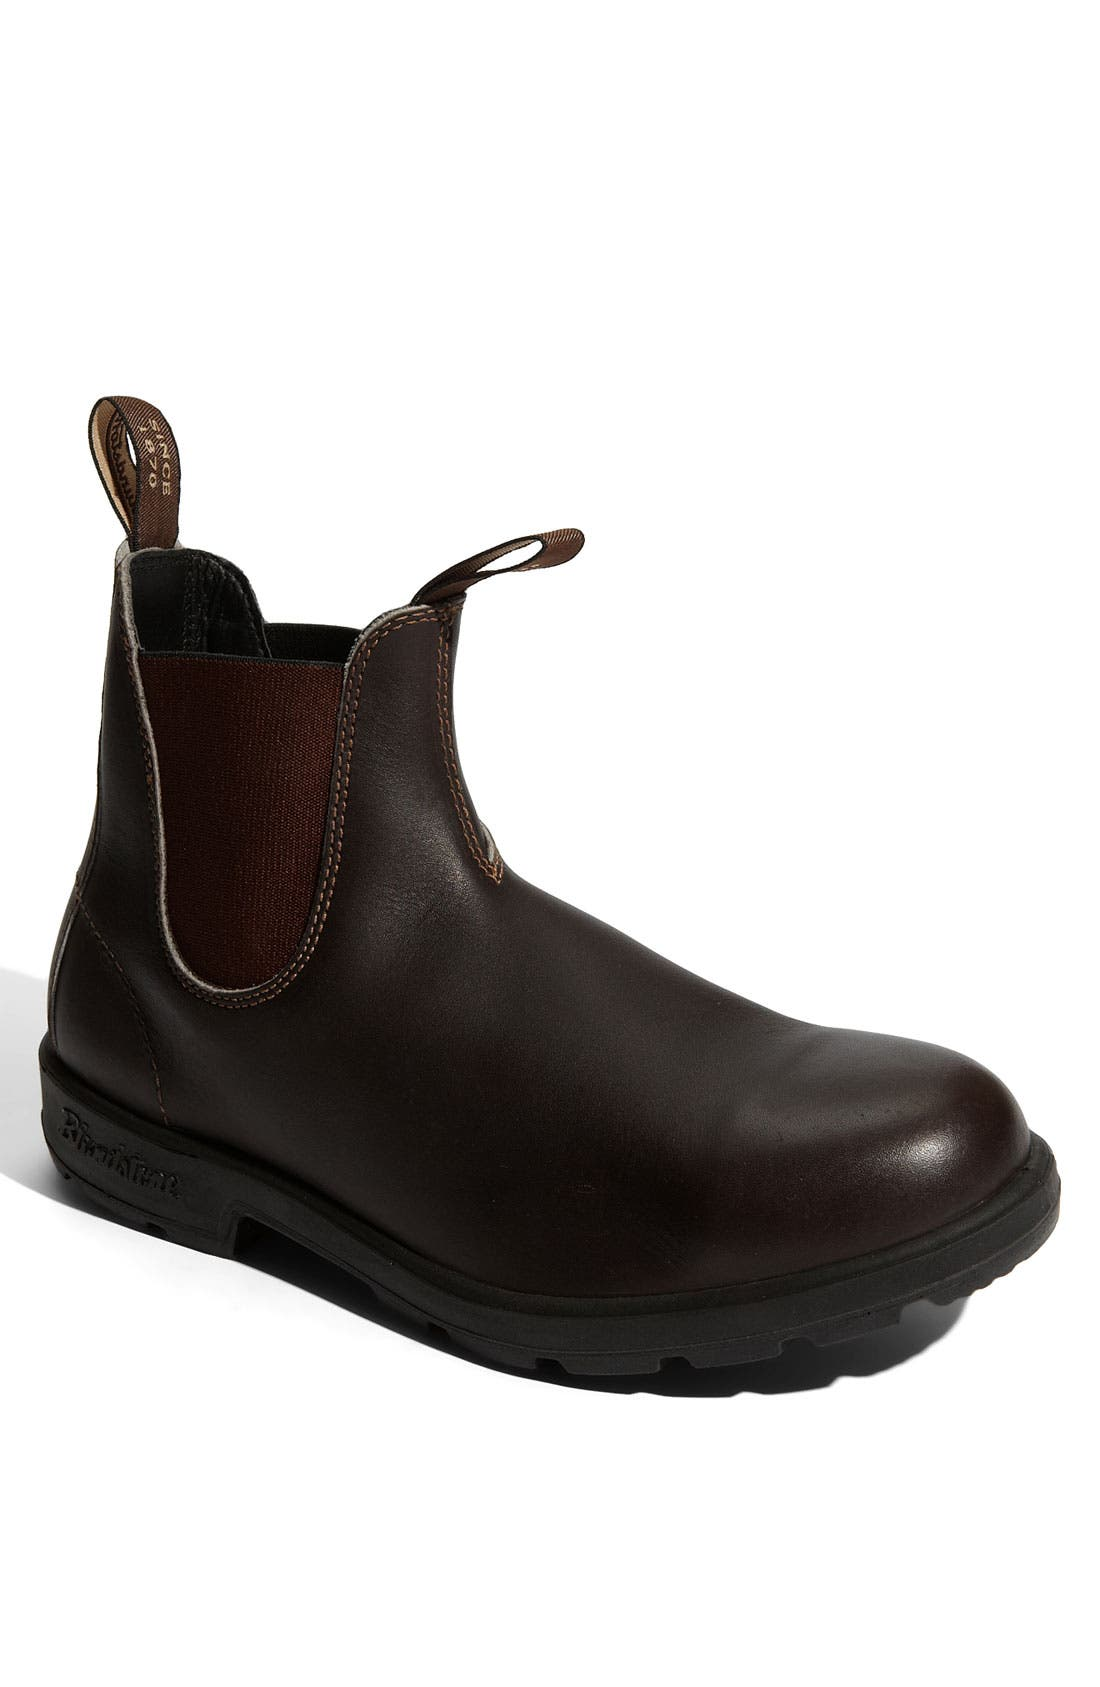 BLUNDSTONE FOOTWEAR, Classic Boot, Main thumbnail 1, color, STOUT BROWN